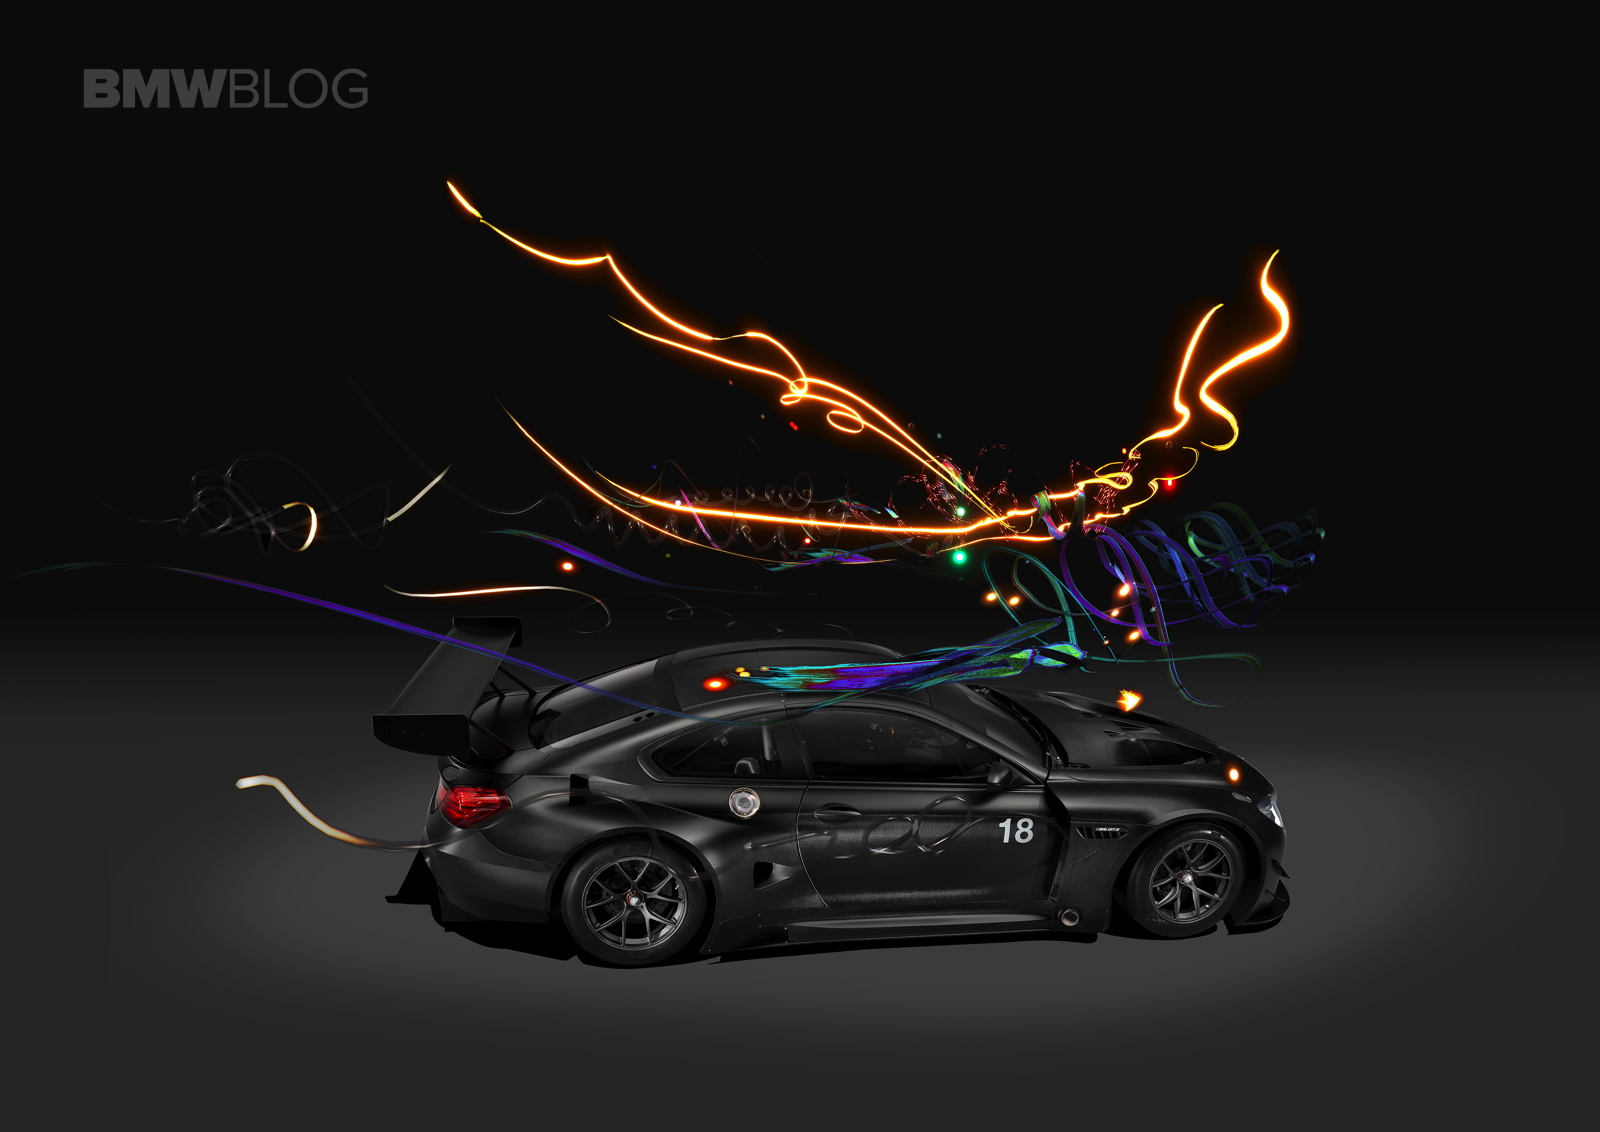 Chinese Artist Cao Fei Unveils The New Bmw Art Car